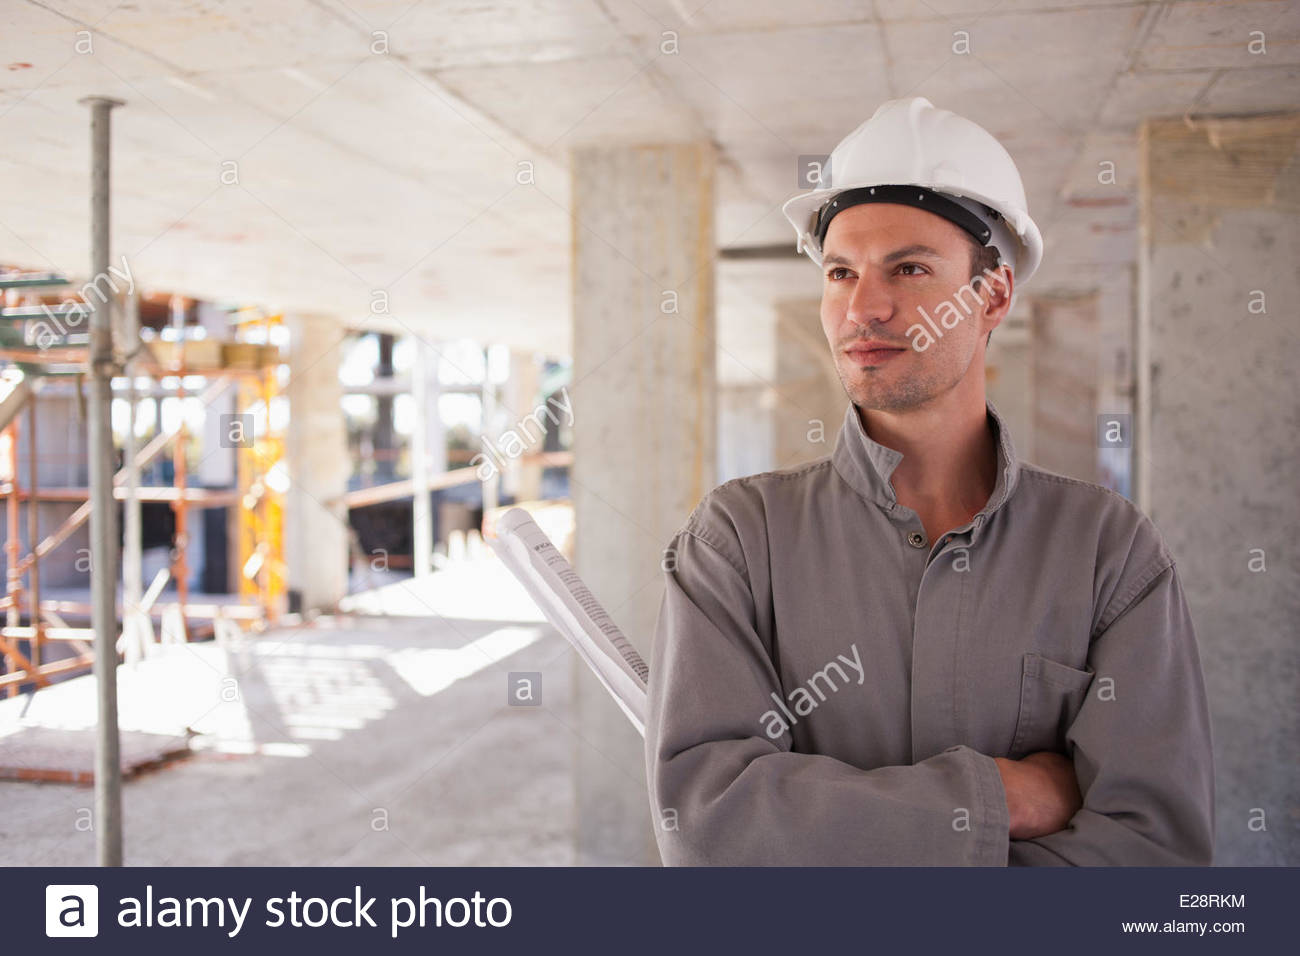 Construction worker with arms crossed on construction site - Stock Image